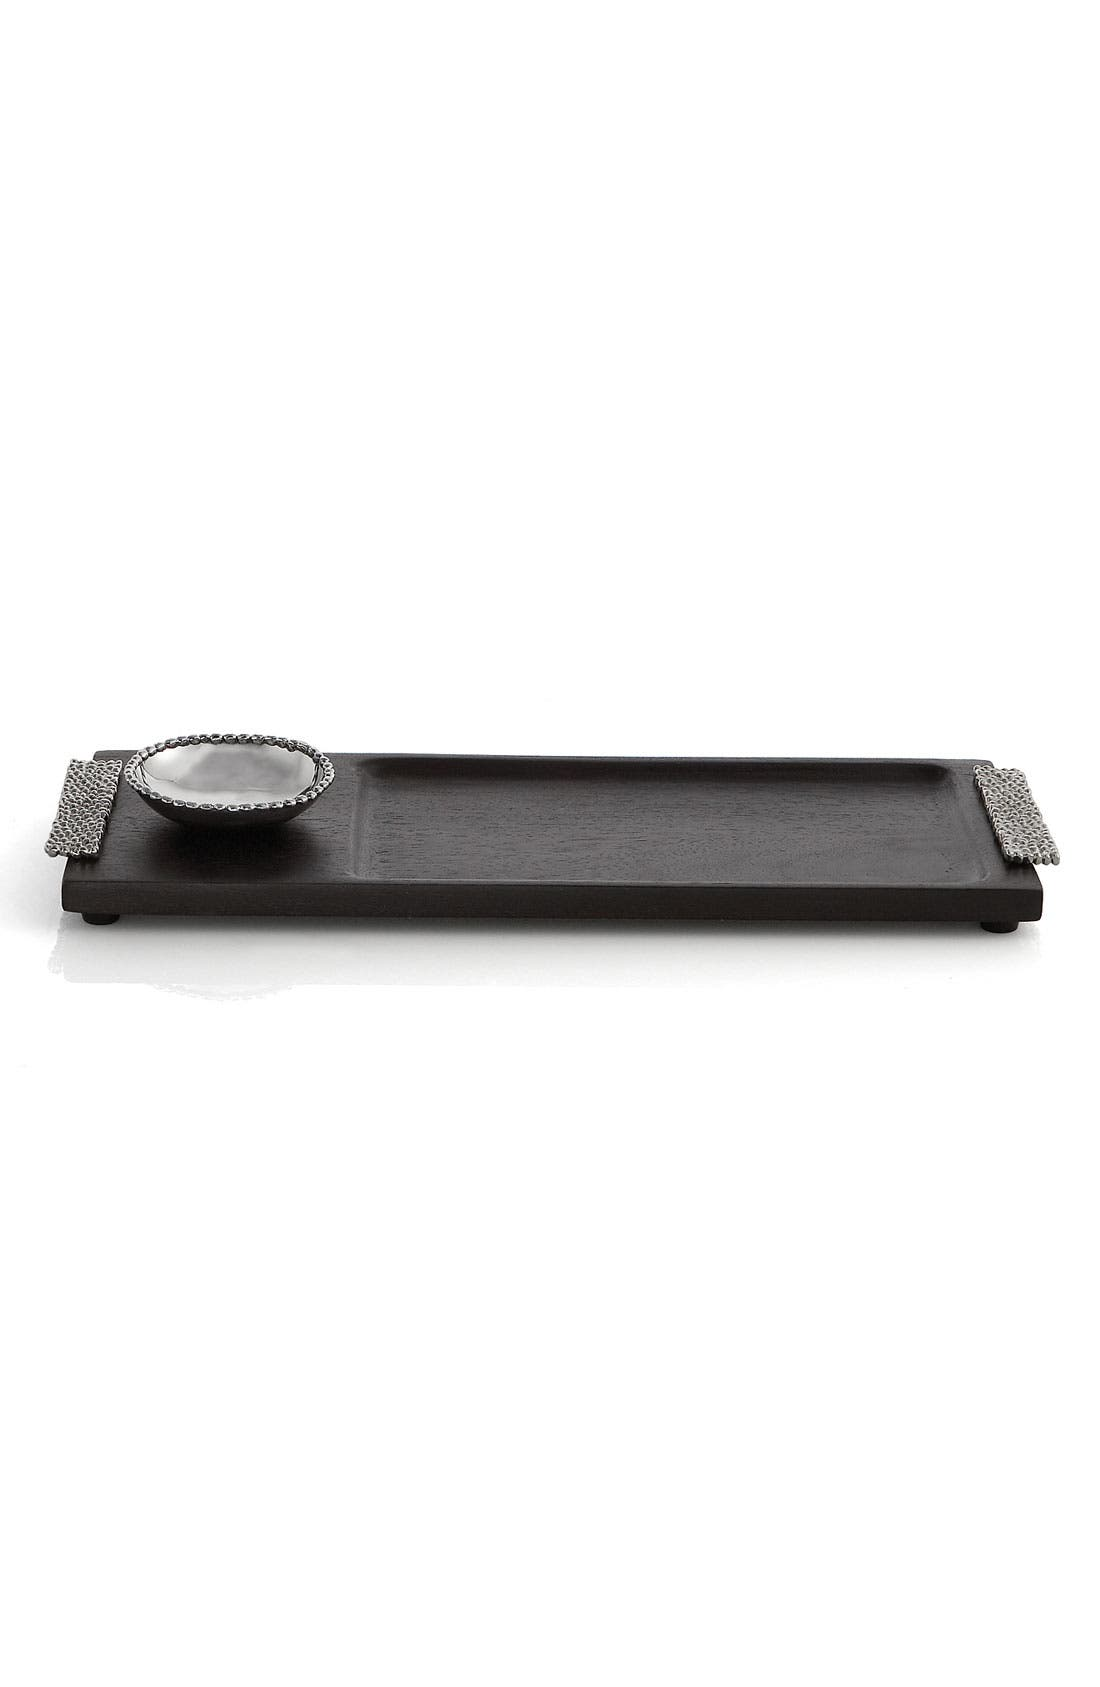 Main Image - Michael Aram 'Molten' Olive Oil Dipping Board